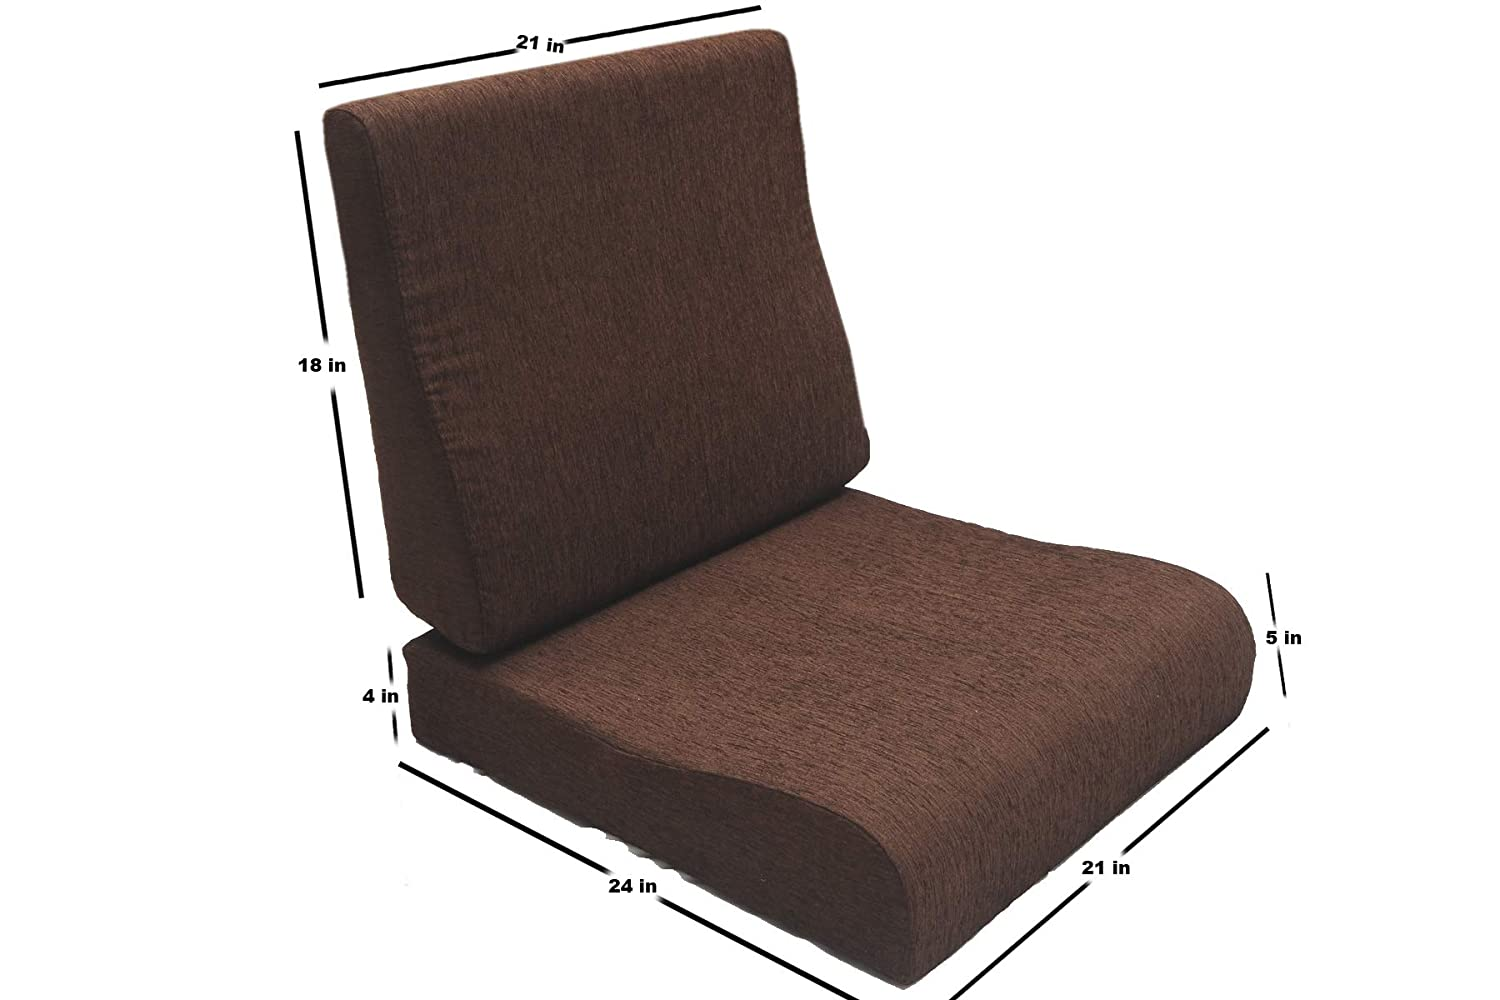 Buy FLEXI COMFORT Cushion, 21 x 24 inch, 21 x 18 inch, Brown Online at Low Prices in India - Amazon.in